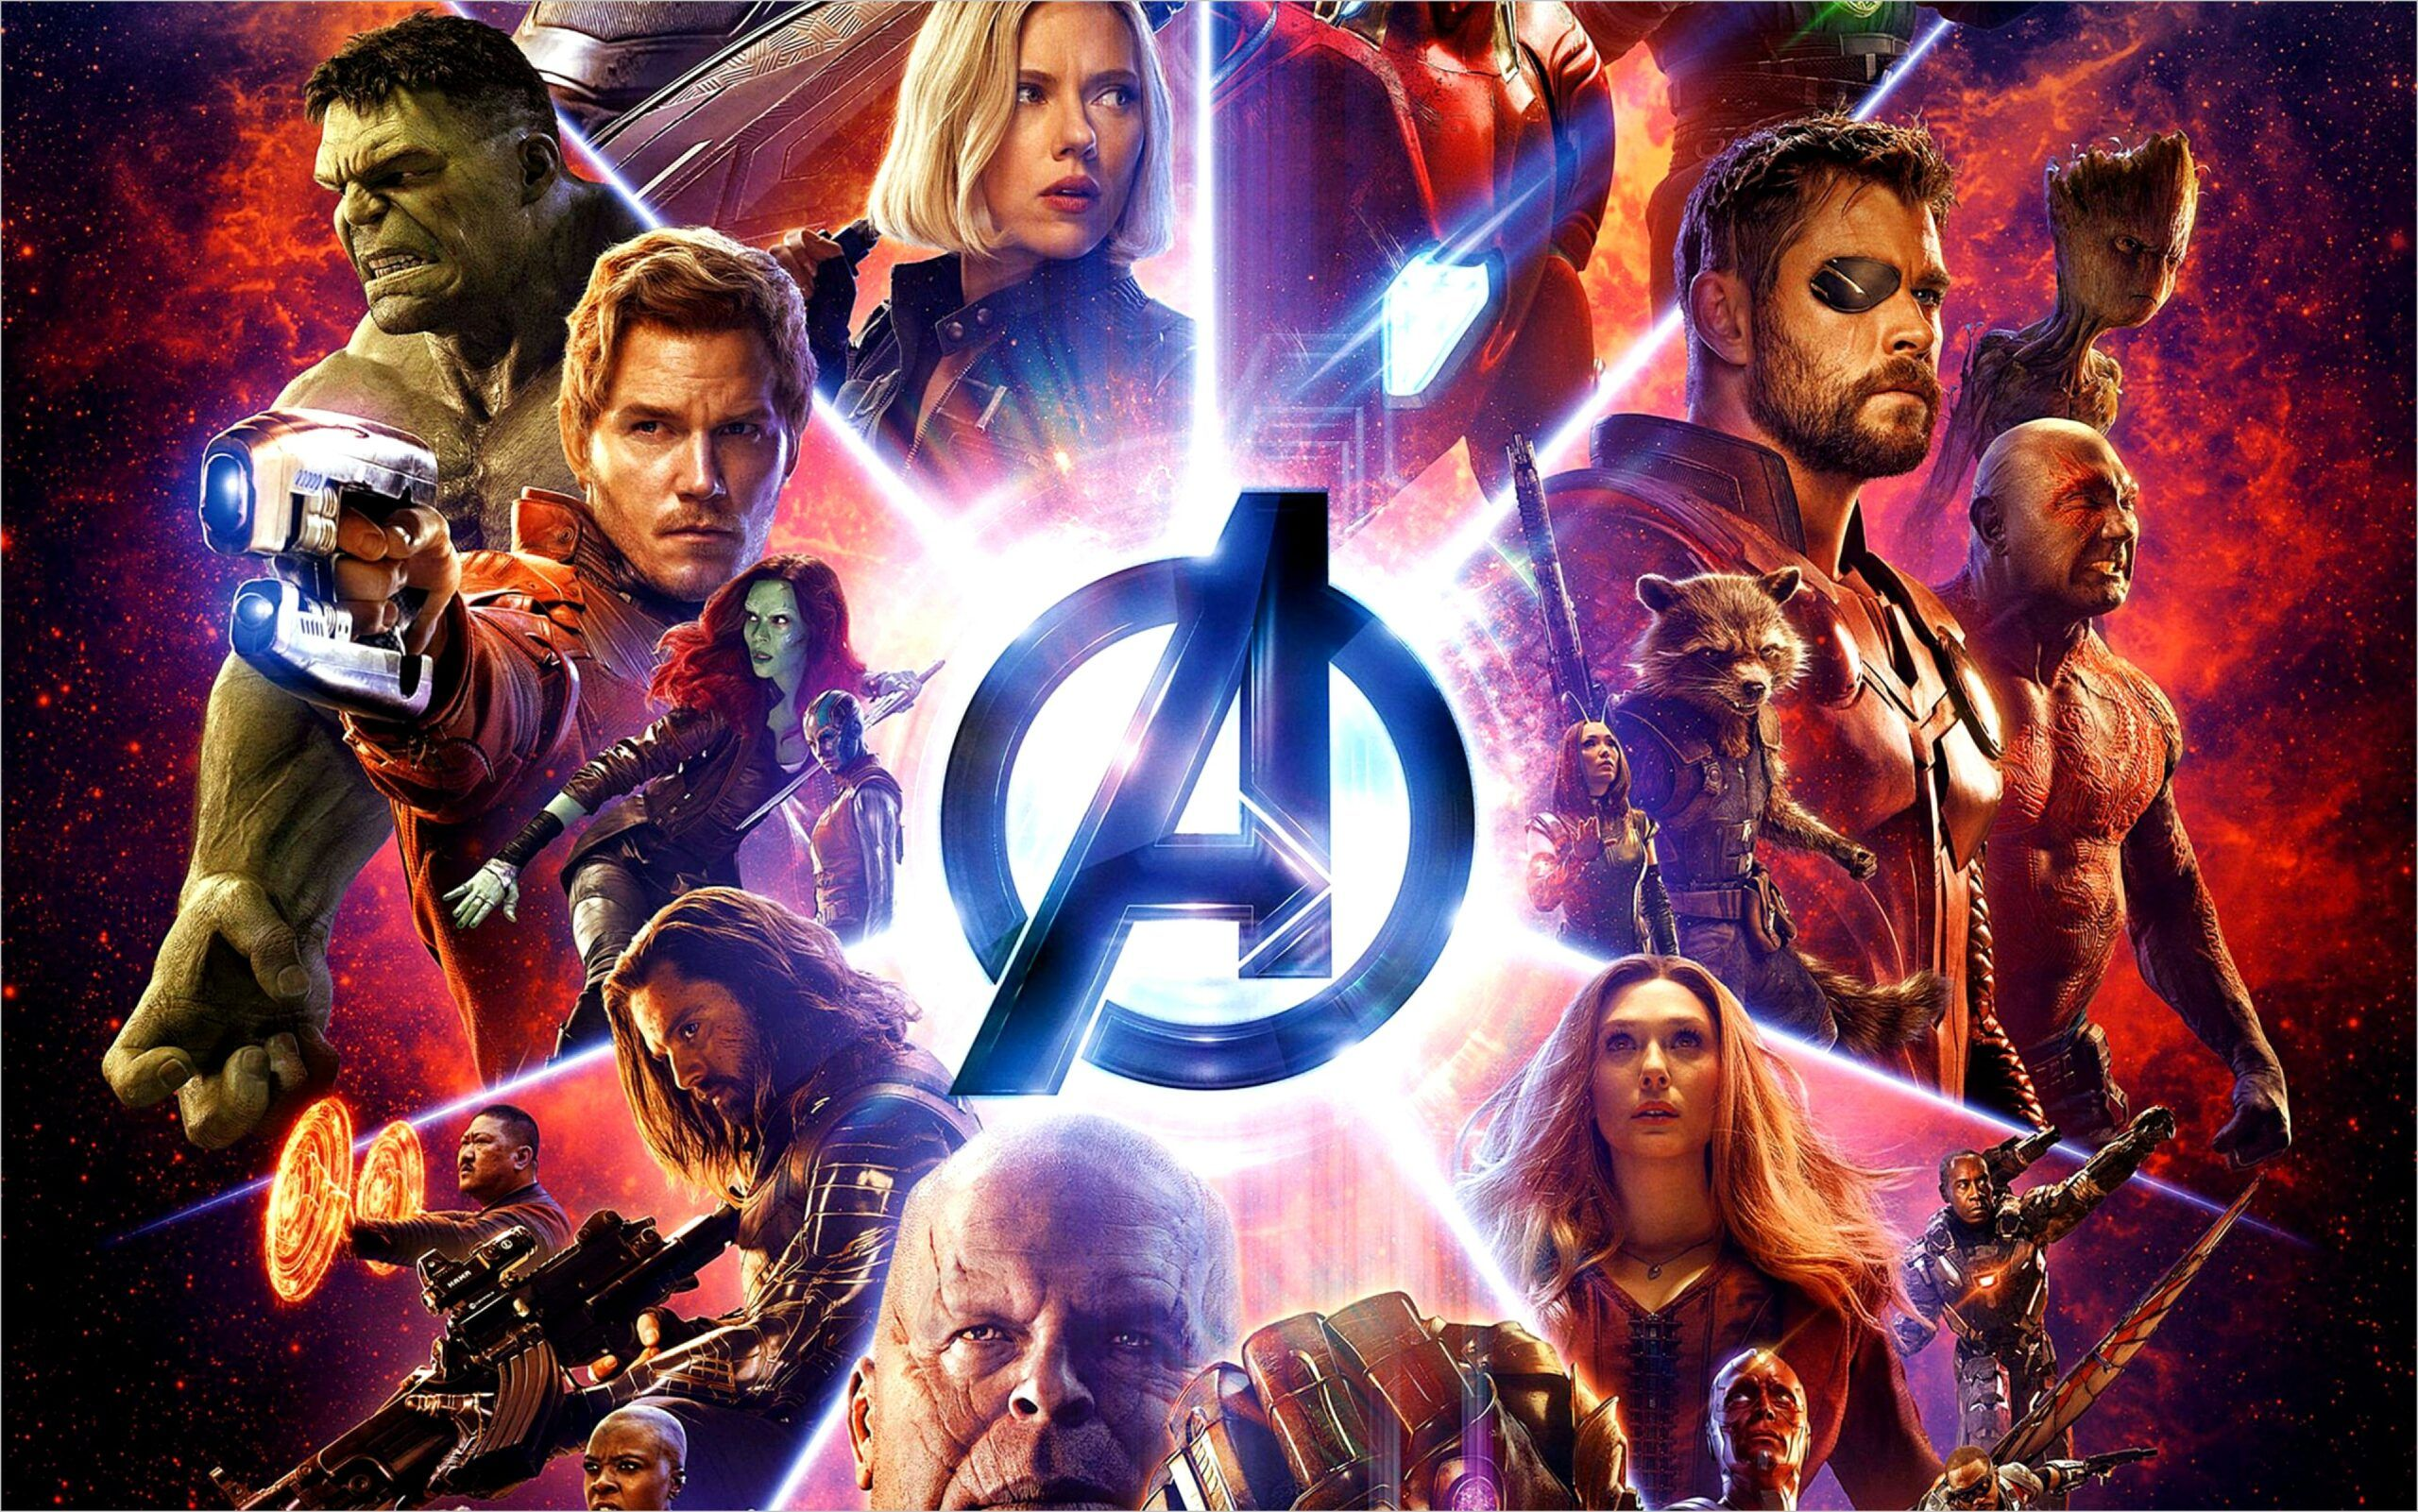 Avengers Infinity War 4k Wallpapers For Pc In 2020 Avengers Wallpaper Avengers Marvel